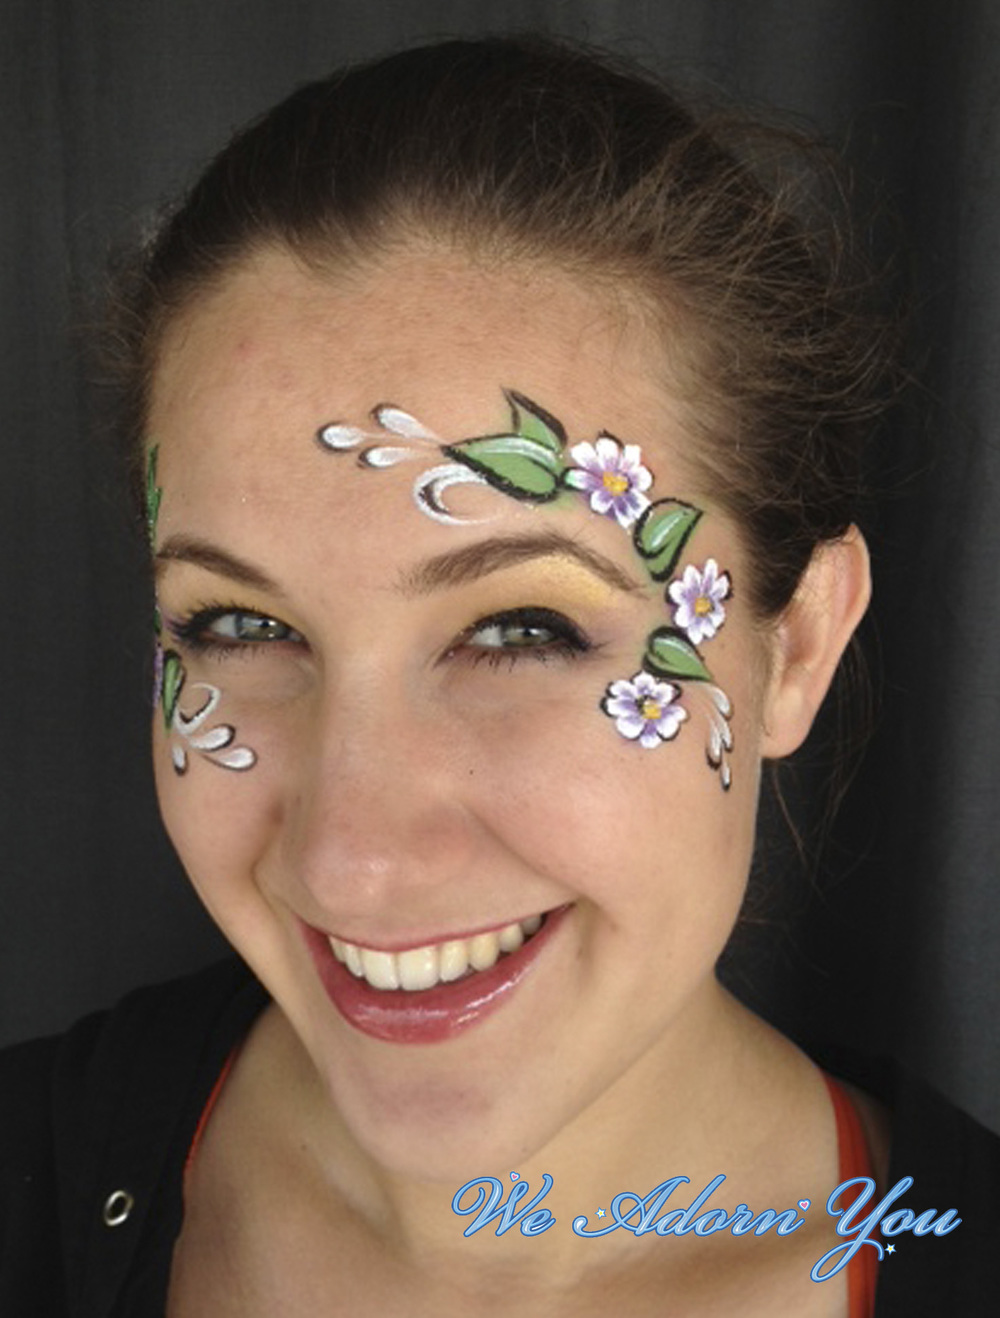 Face Painting Floral - We Adorn You.jpg